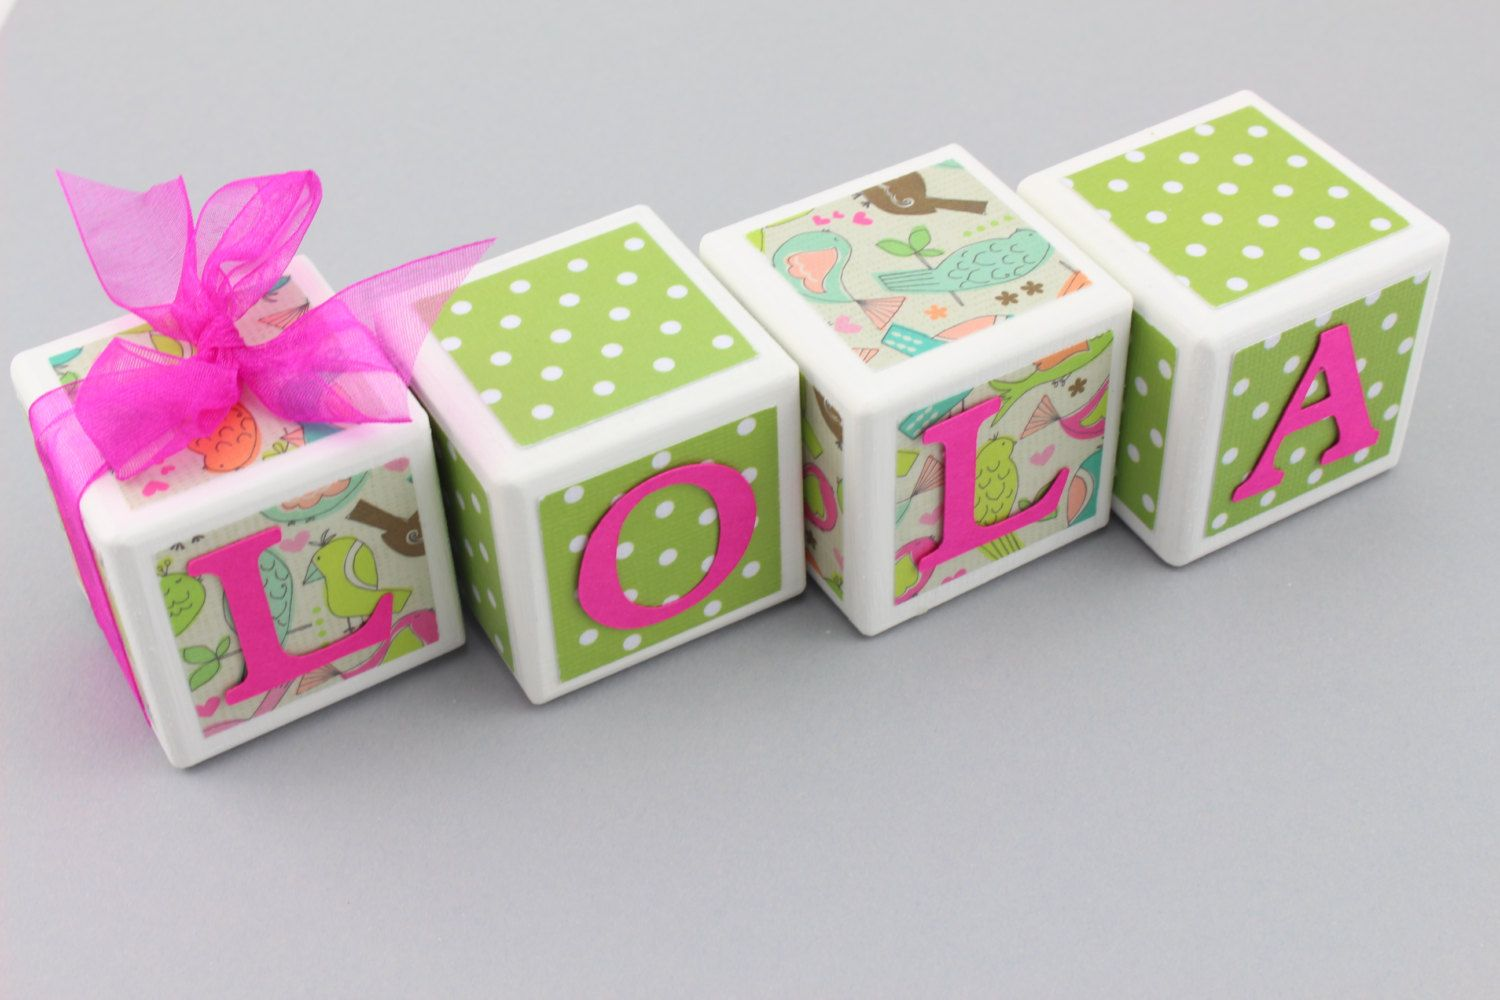 Custom baby name blocks baby shower baby gift newborn whimsical custom baby name blocks baby shower baby gift newborn whimsical nursery bird nursery photography props baby negle